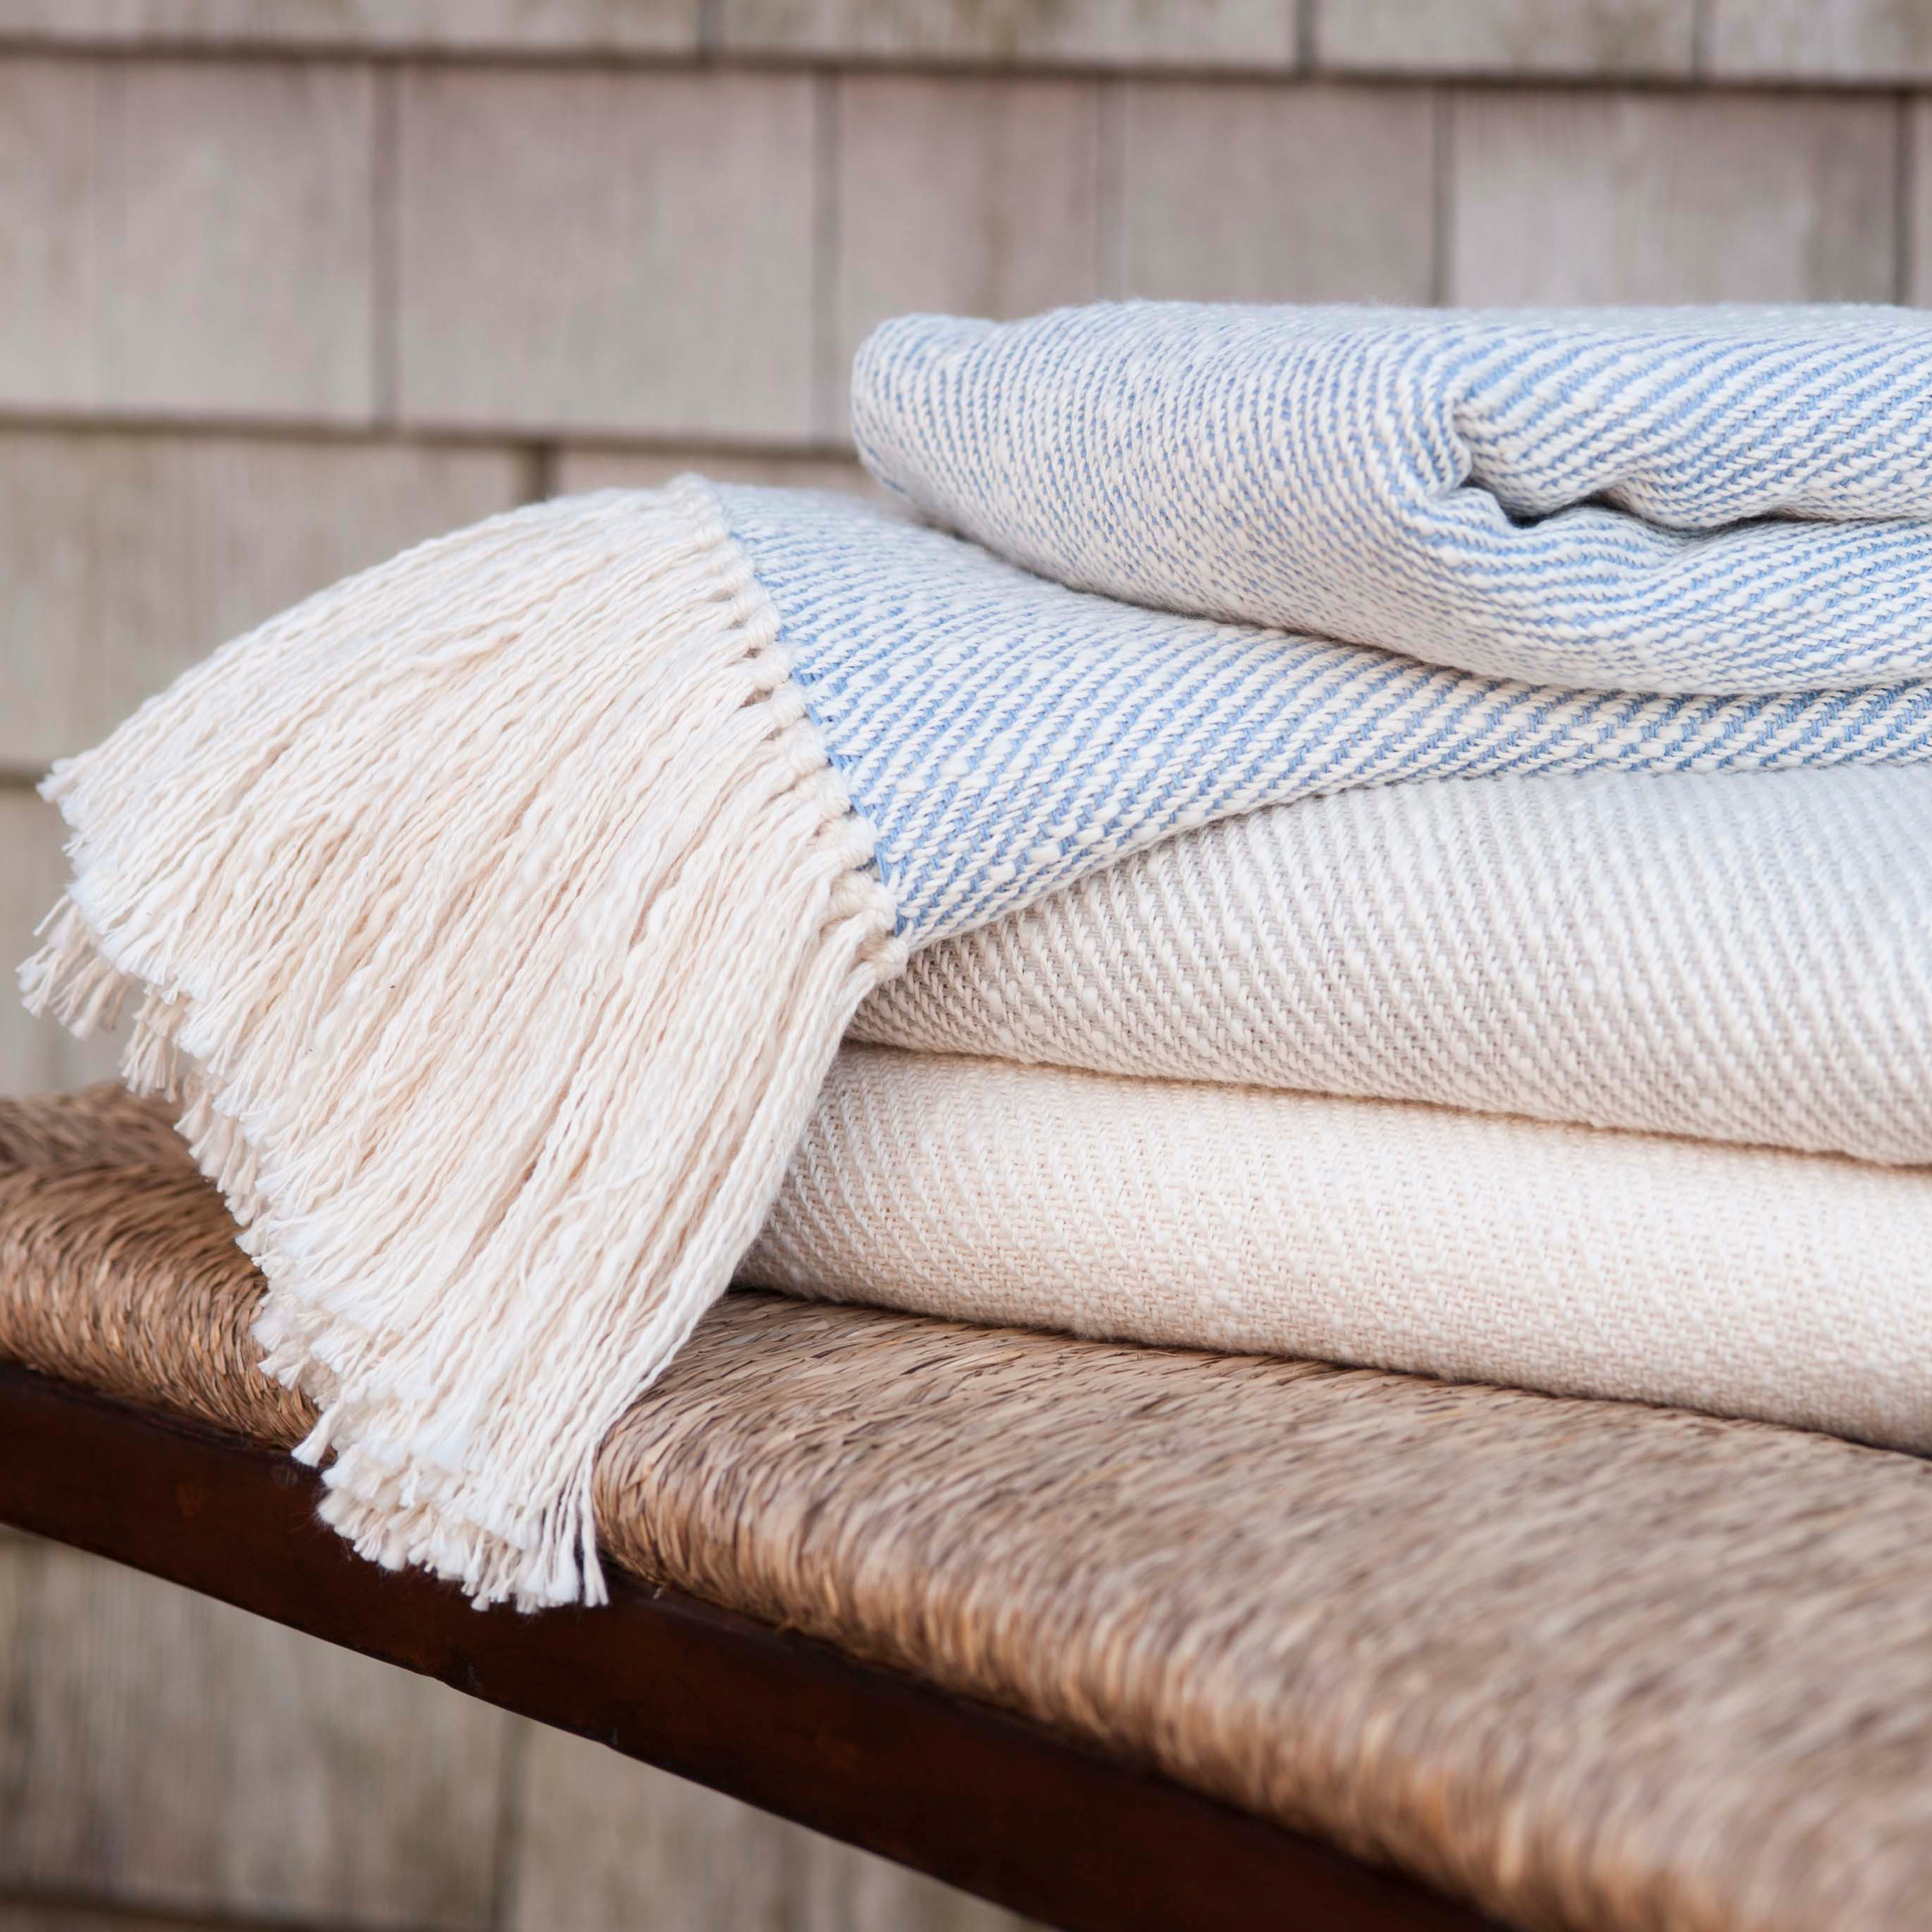 Luxury Throws, Coverlets & Blankets | Scandia Home.